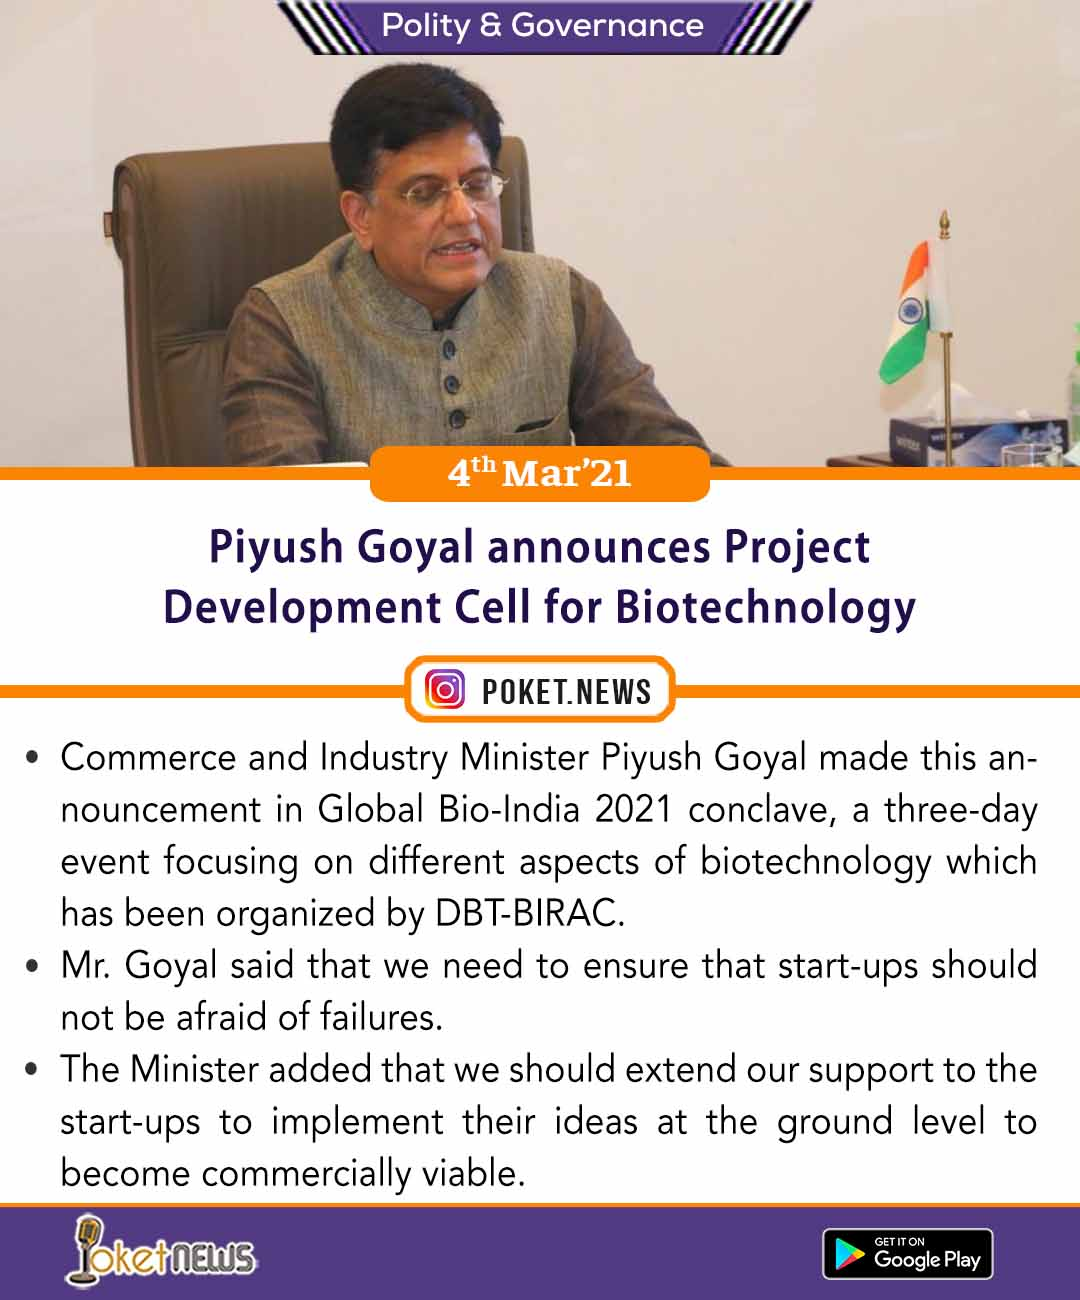 Piyush Goyal announces Project Development Cell for Biotechnology